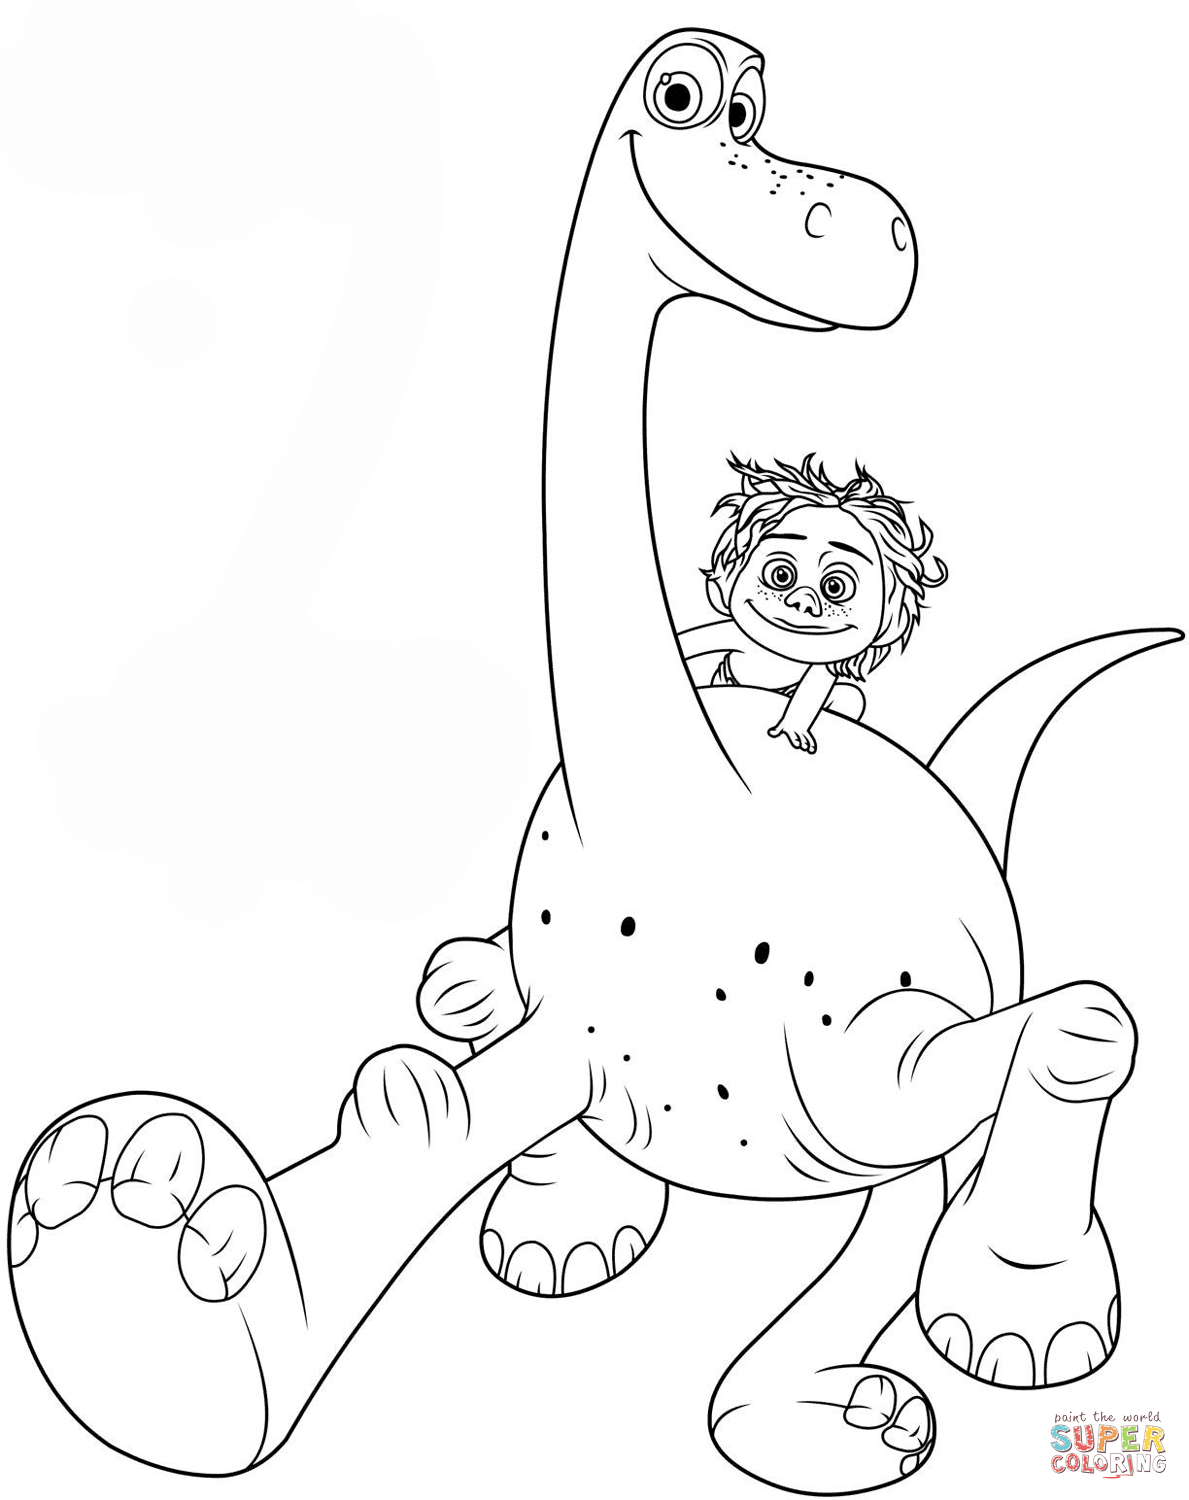 Coloring page x marks the spot - Coloring Page X Marks The Spot Arlo And Spot Coloring Page Free Printable Coloring Pages